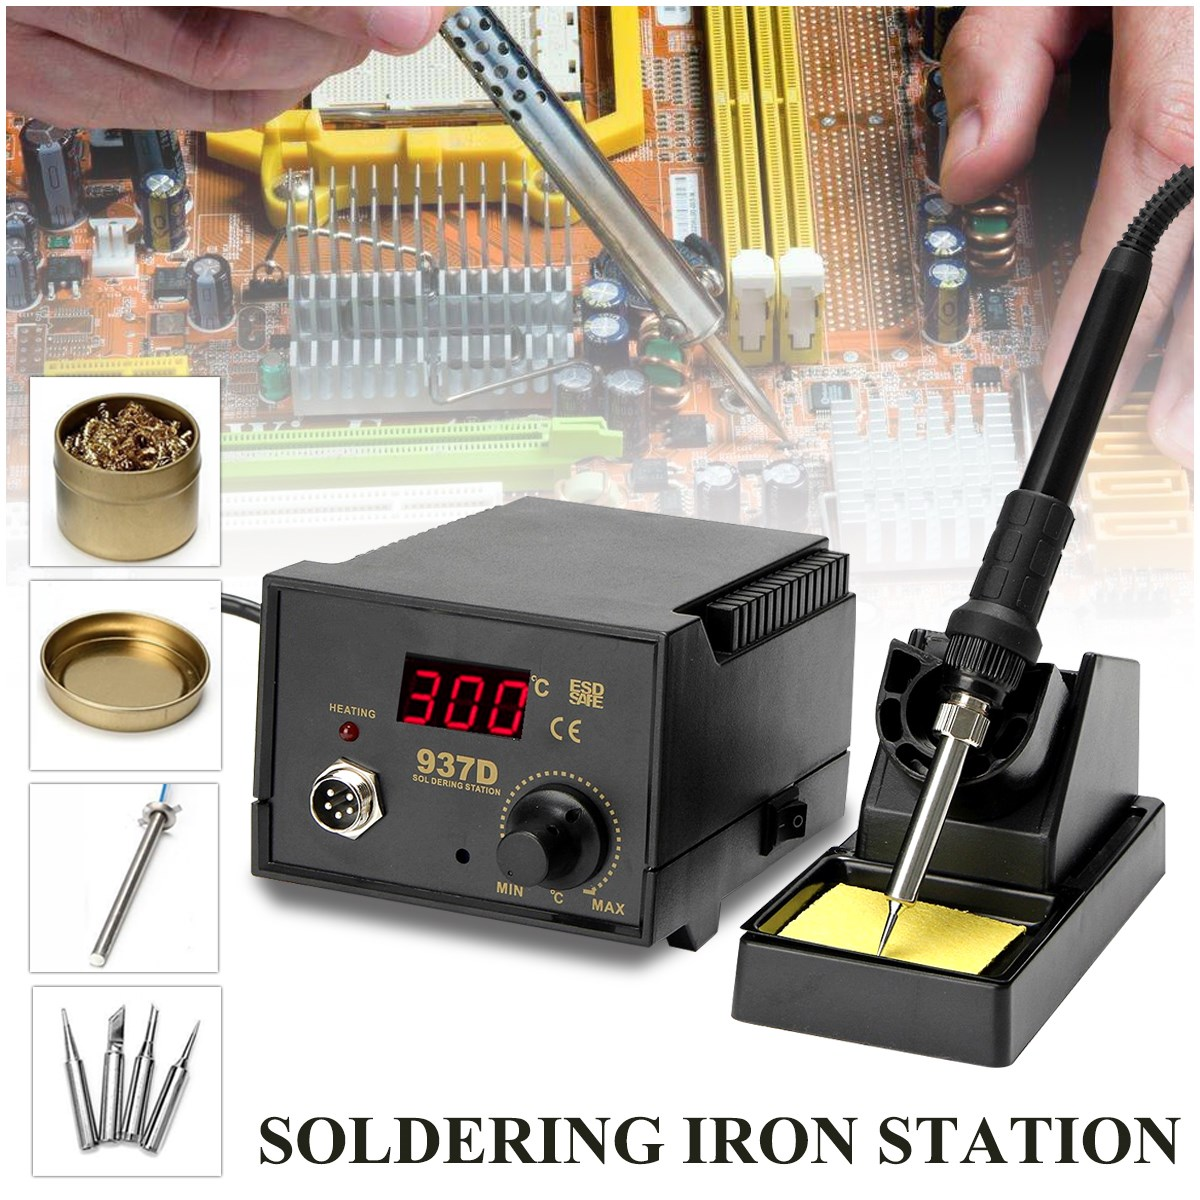 937D 220V 75W Digital Display Soldering Iron Station 4 Tip Lead Welding Tool Kit High quality цена